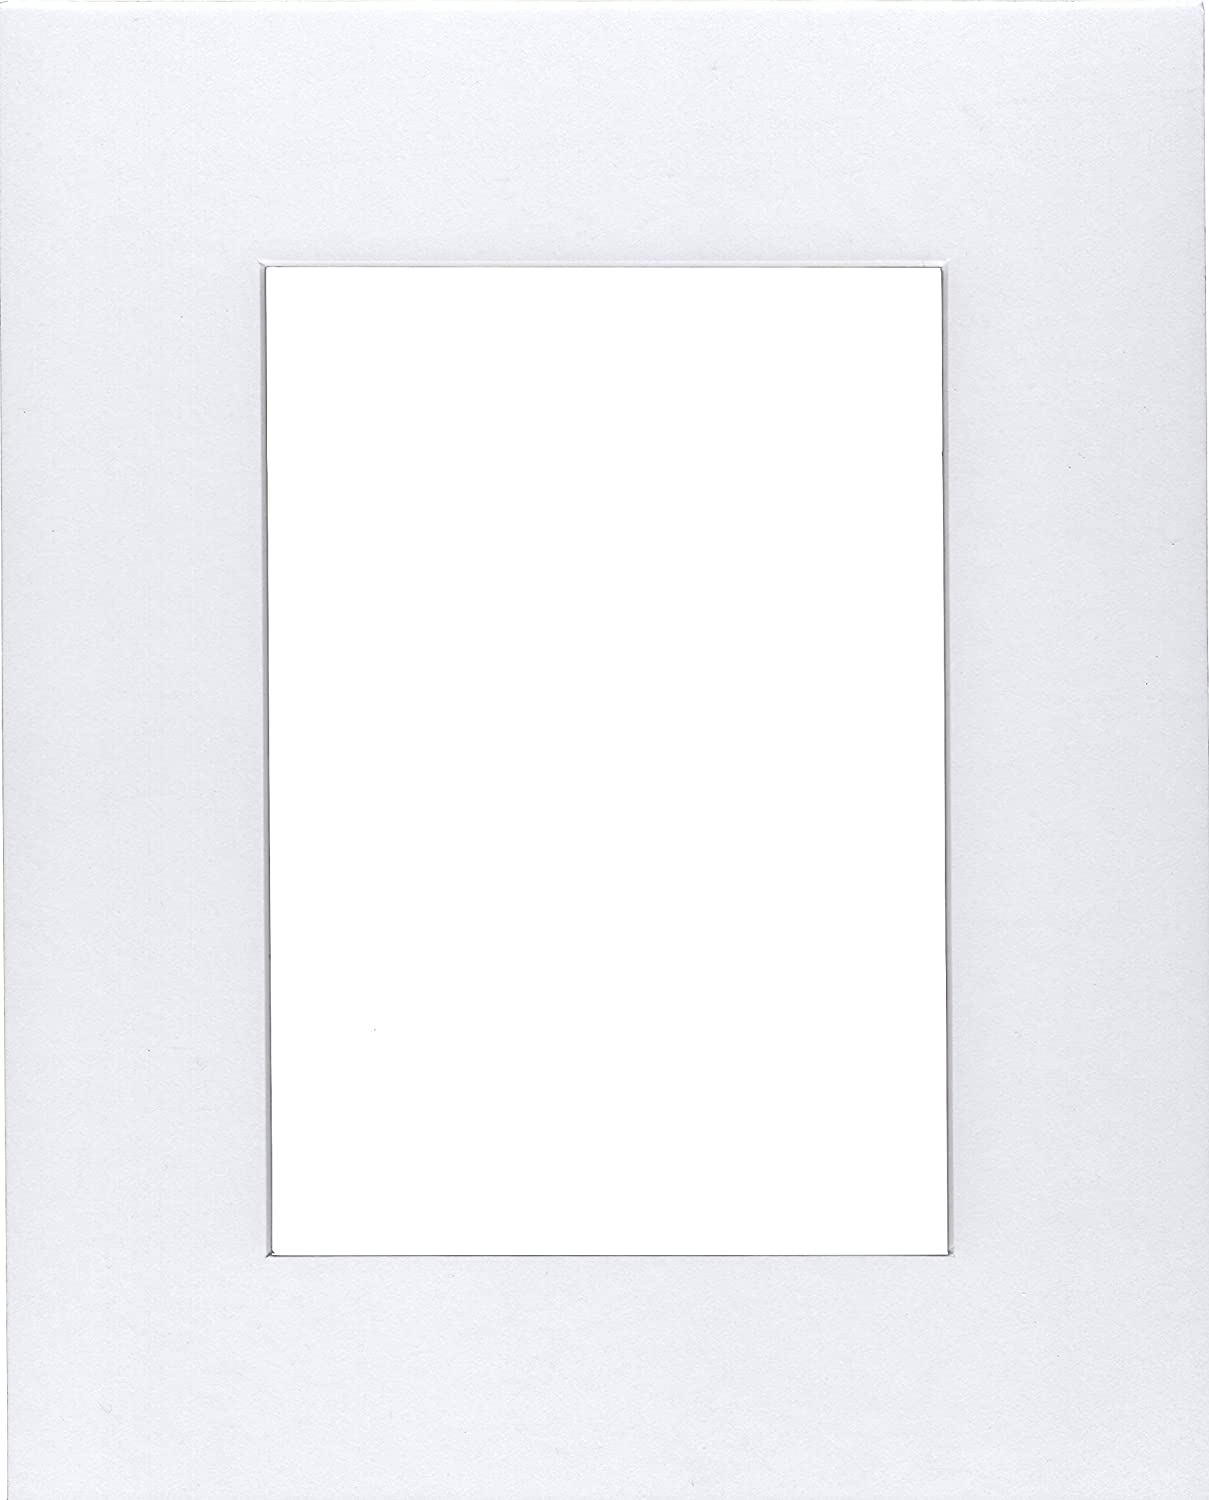 for 4x6 Pictures Bux1 Matting 20 5x7 White Picture Mats with White Core